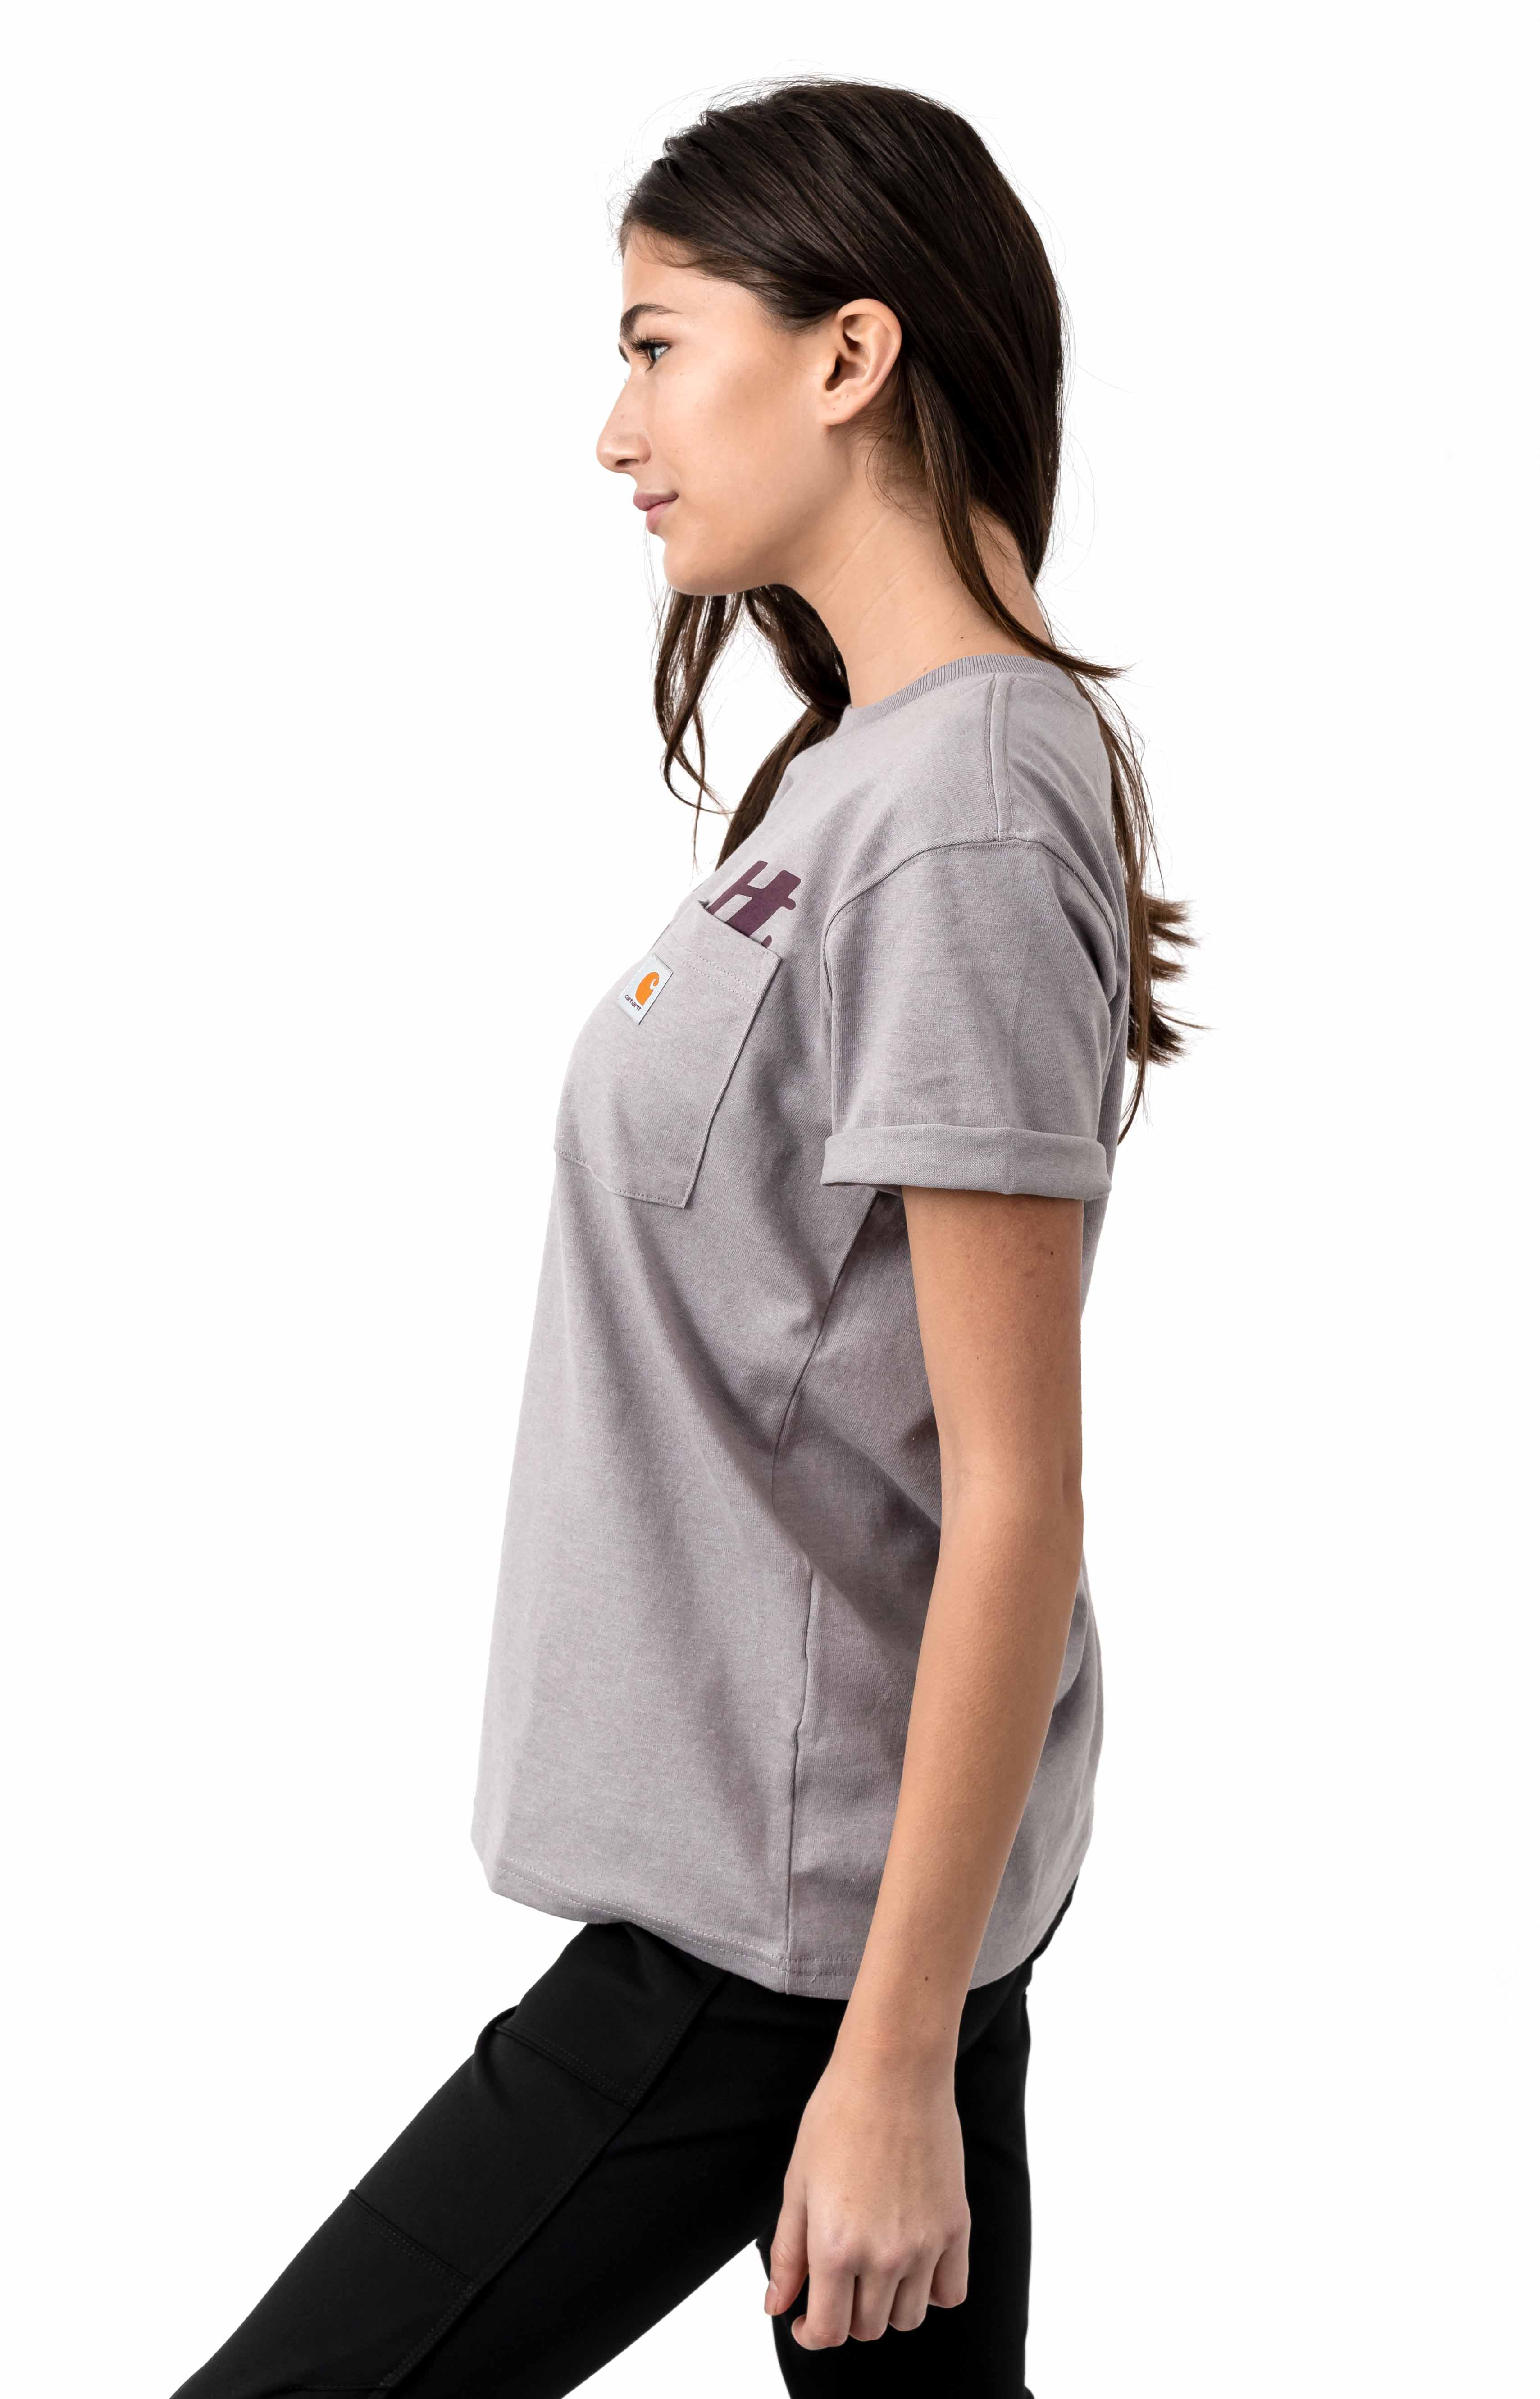 (104356) Original Fit Pocket Graphic T-Shirt - Gull Gray Heather 2